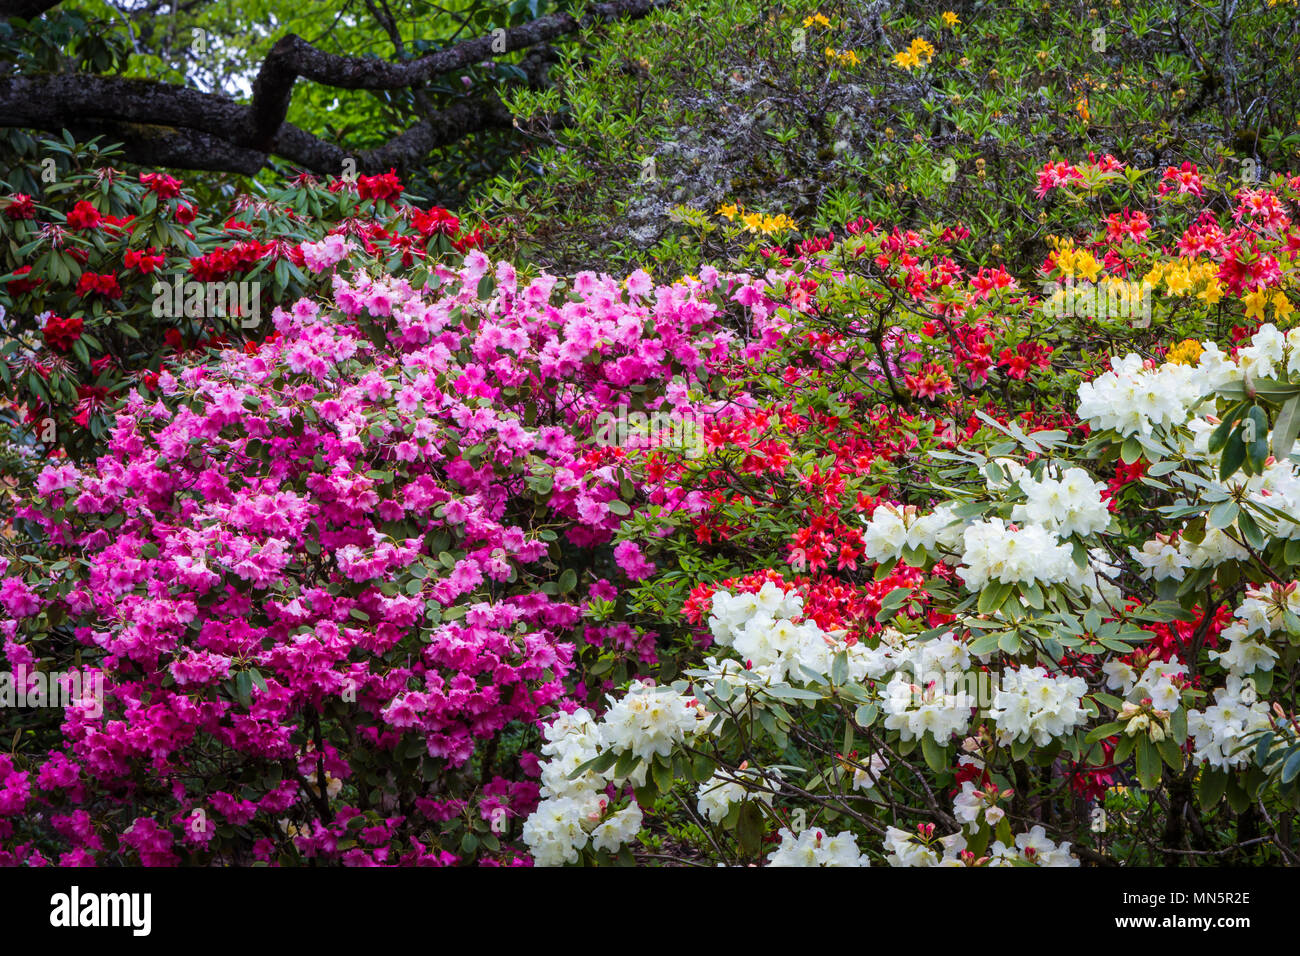 The Crystal Springs Rhododendron Gardens in Portland, Oregon, USA. - Stock Image